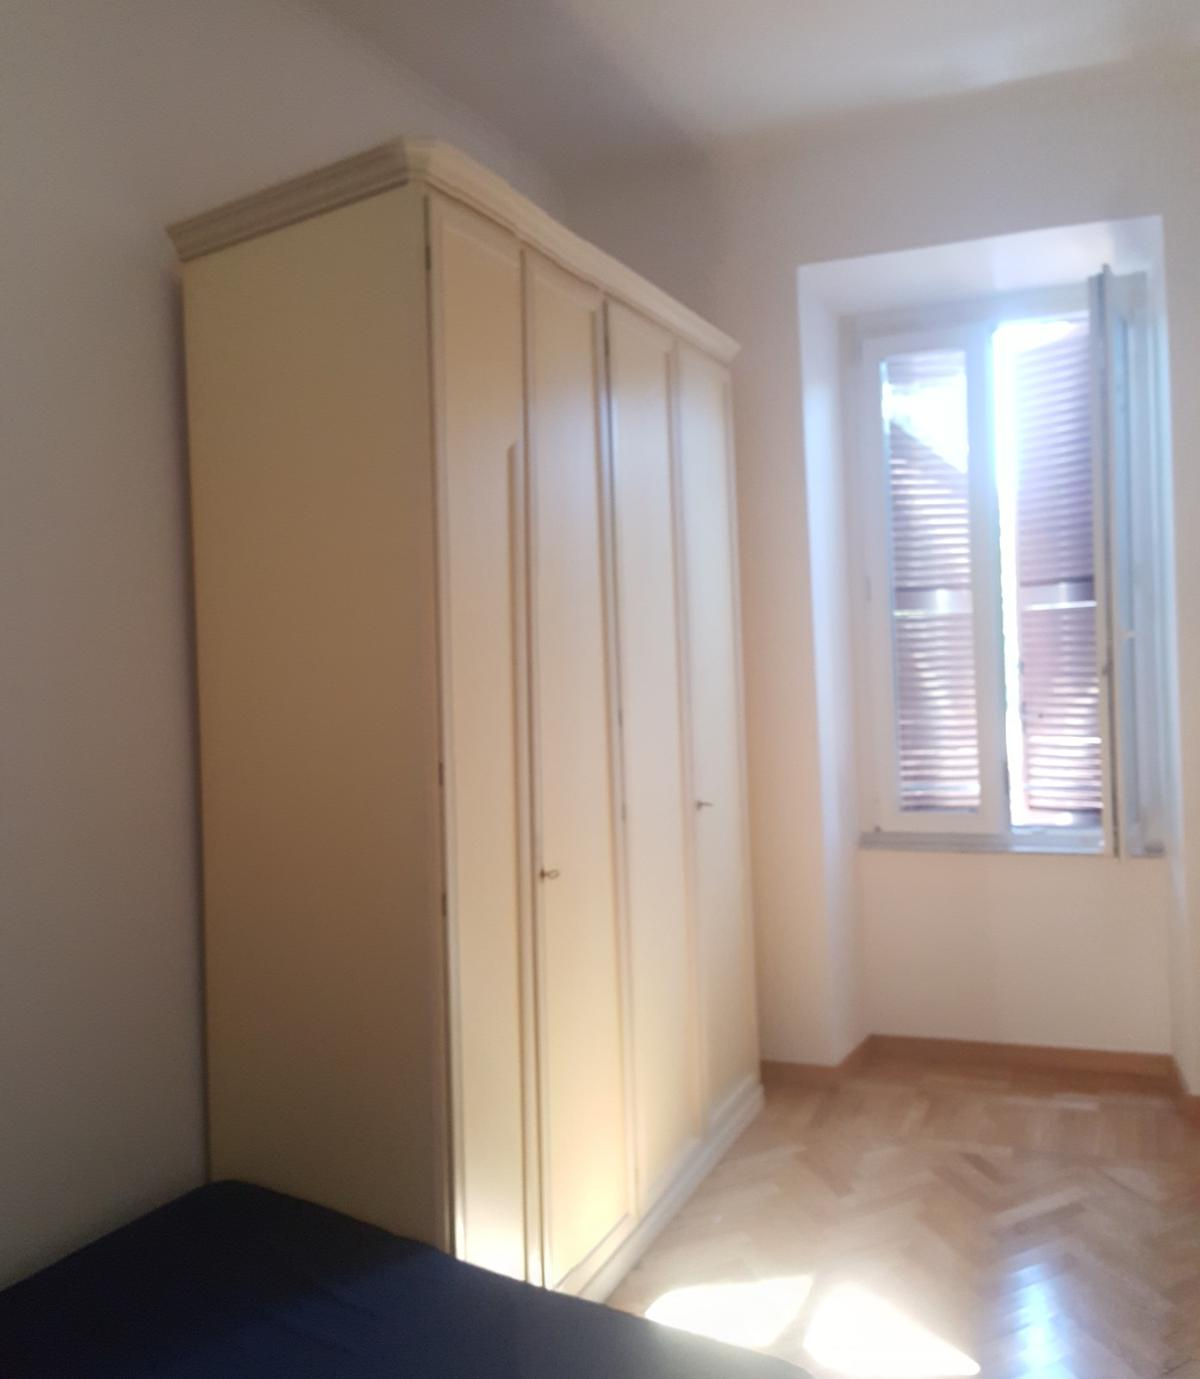 Regalo Armadio 4 Ante.Armadio 4 Ante In 00187 Roma For Free For Sale Shpock